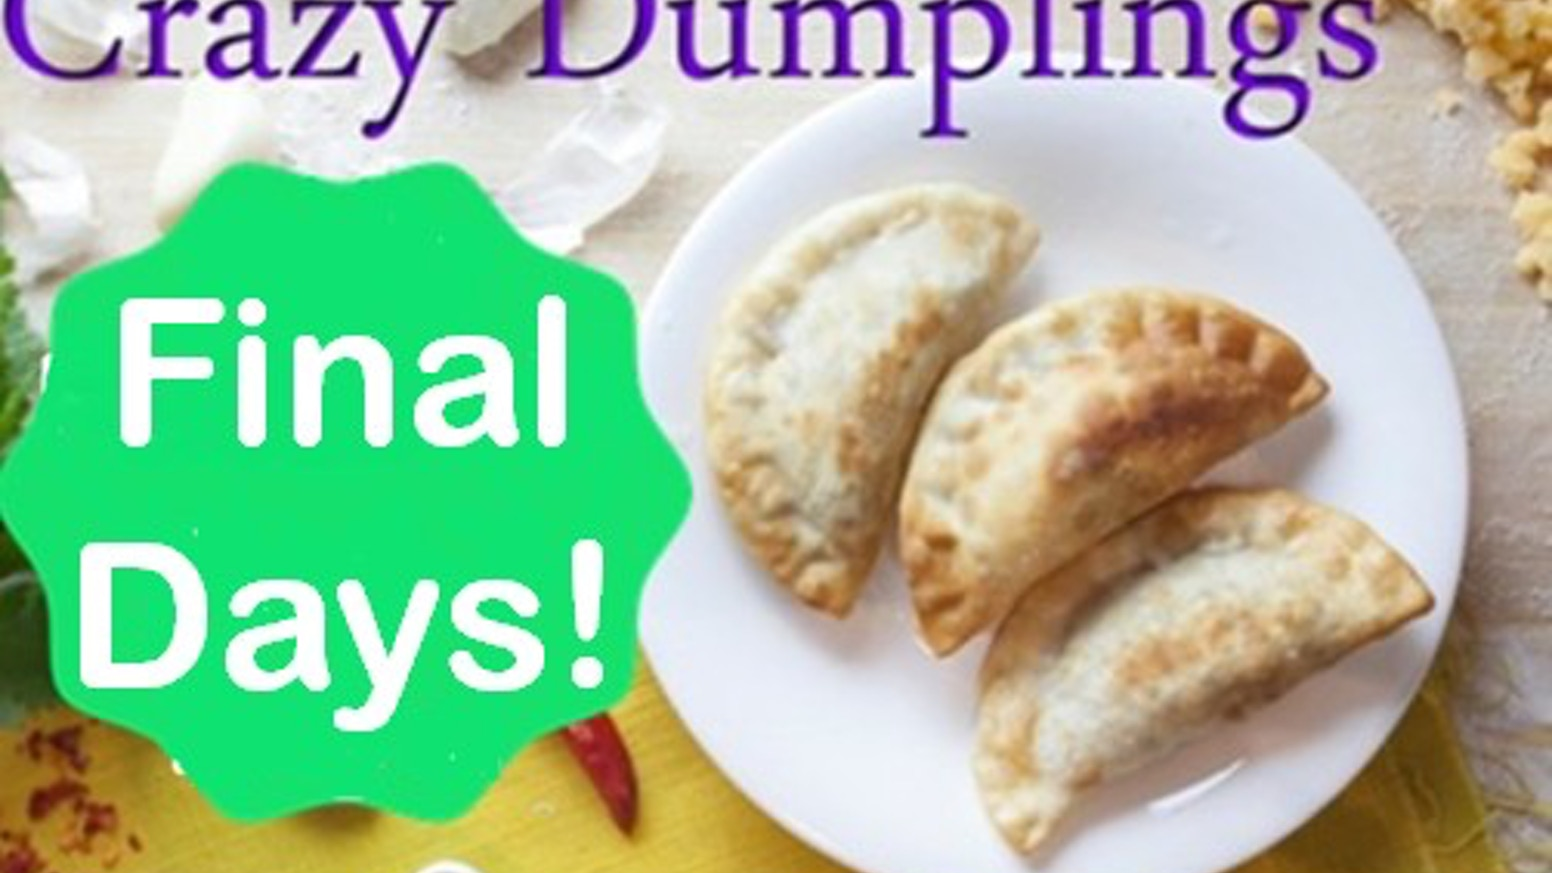 Dumplings are the most versatile and easy-to-make food on the planet! Learn over 40 dumpling recipes with Crazy Dumplings!